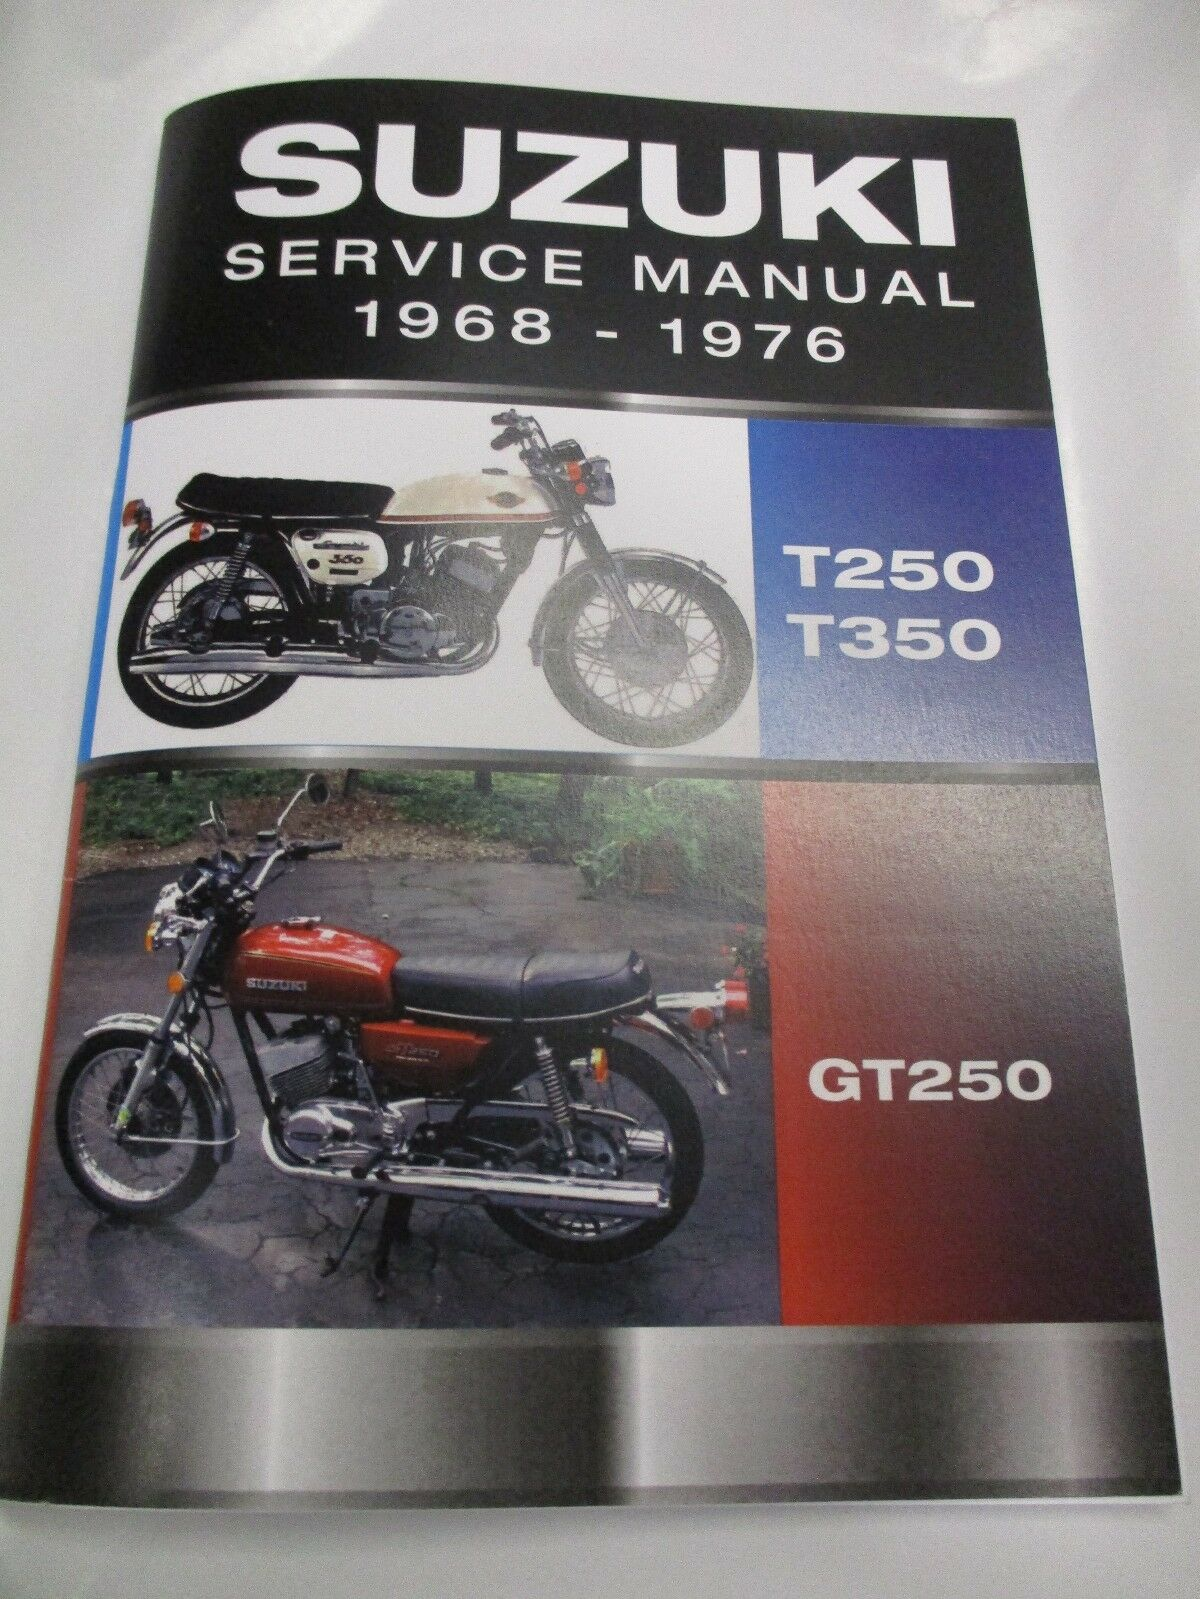 Suzuki T250 T350 GT250 service manual 1969-1976 1 of 3Only 4 available ...